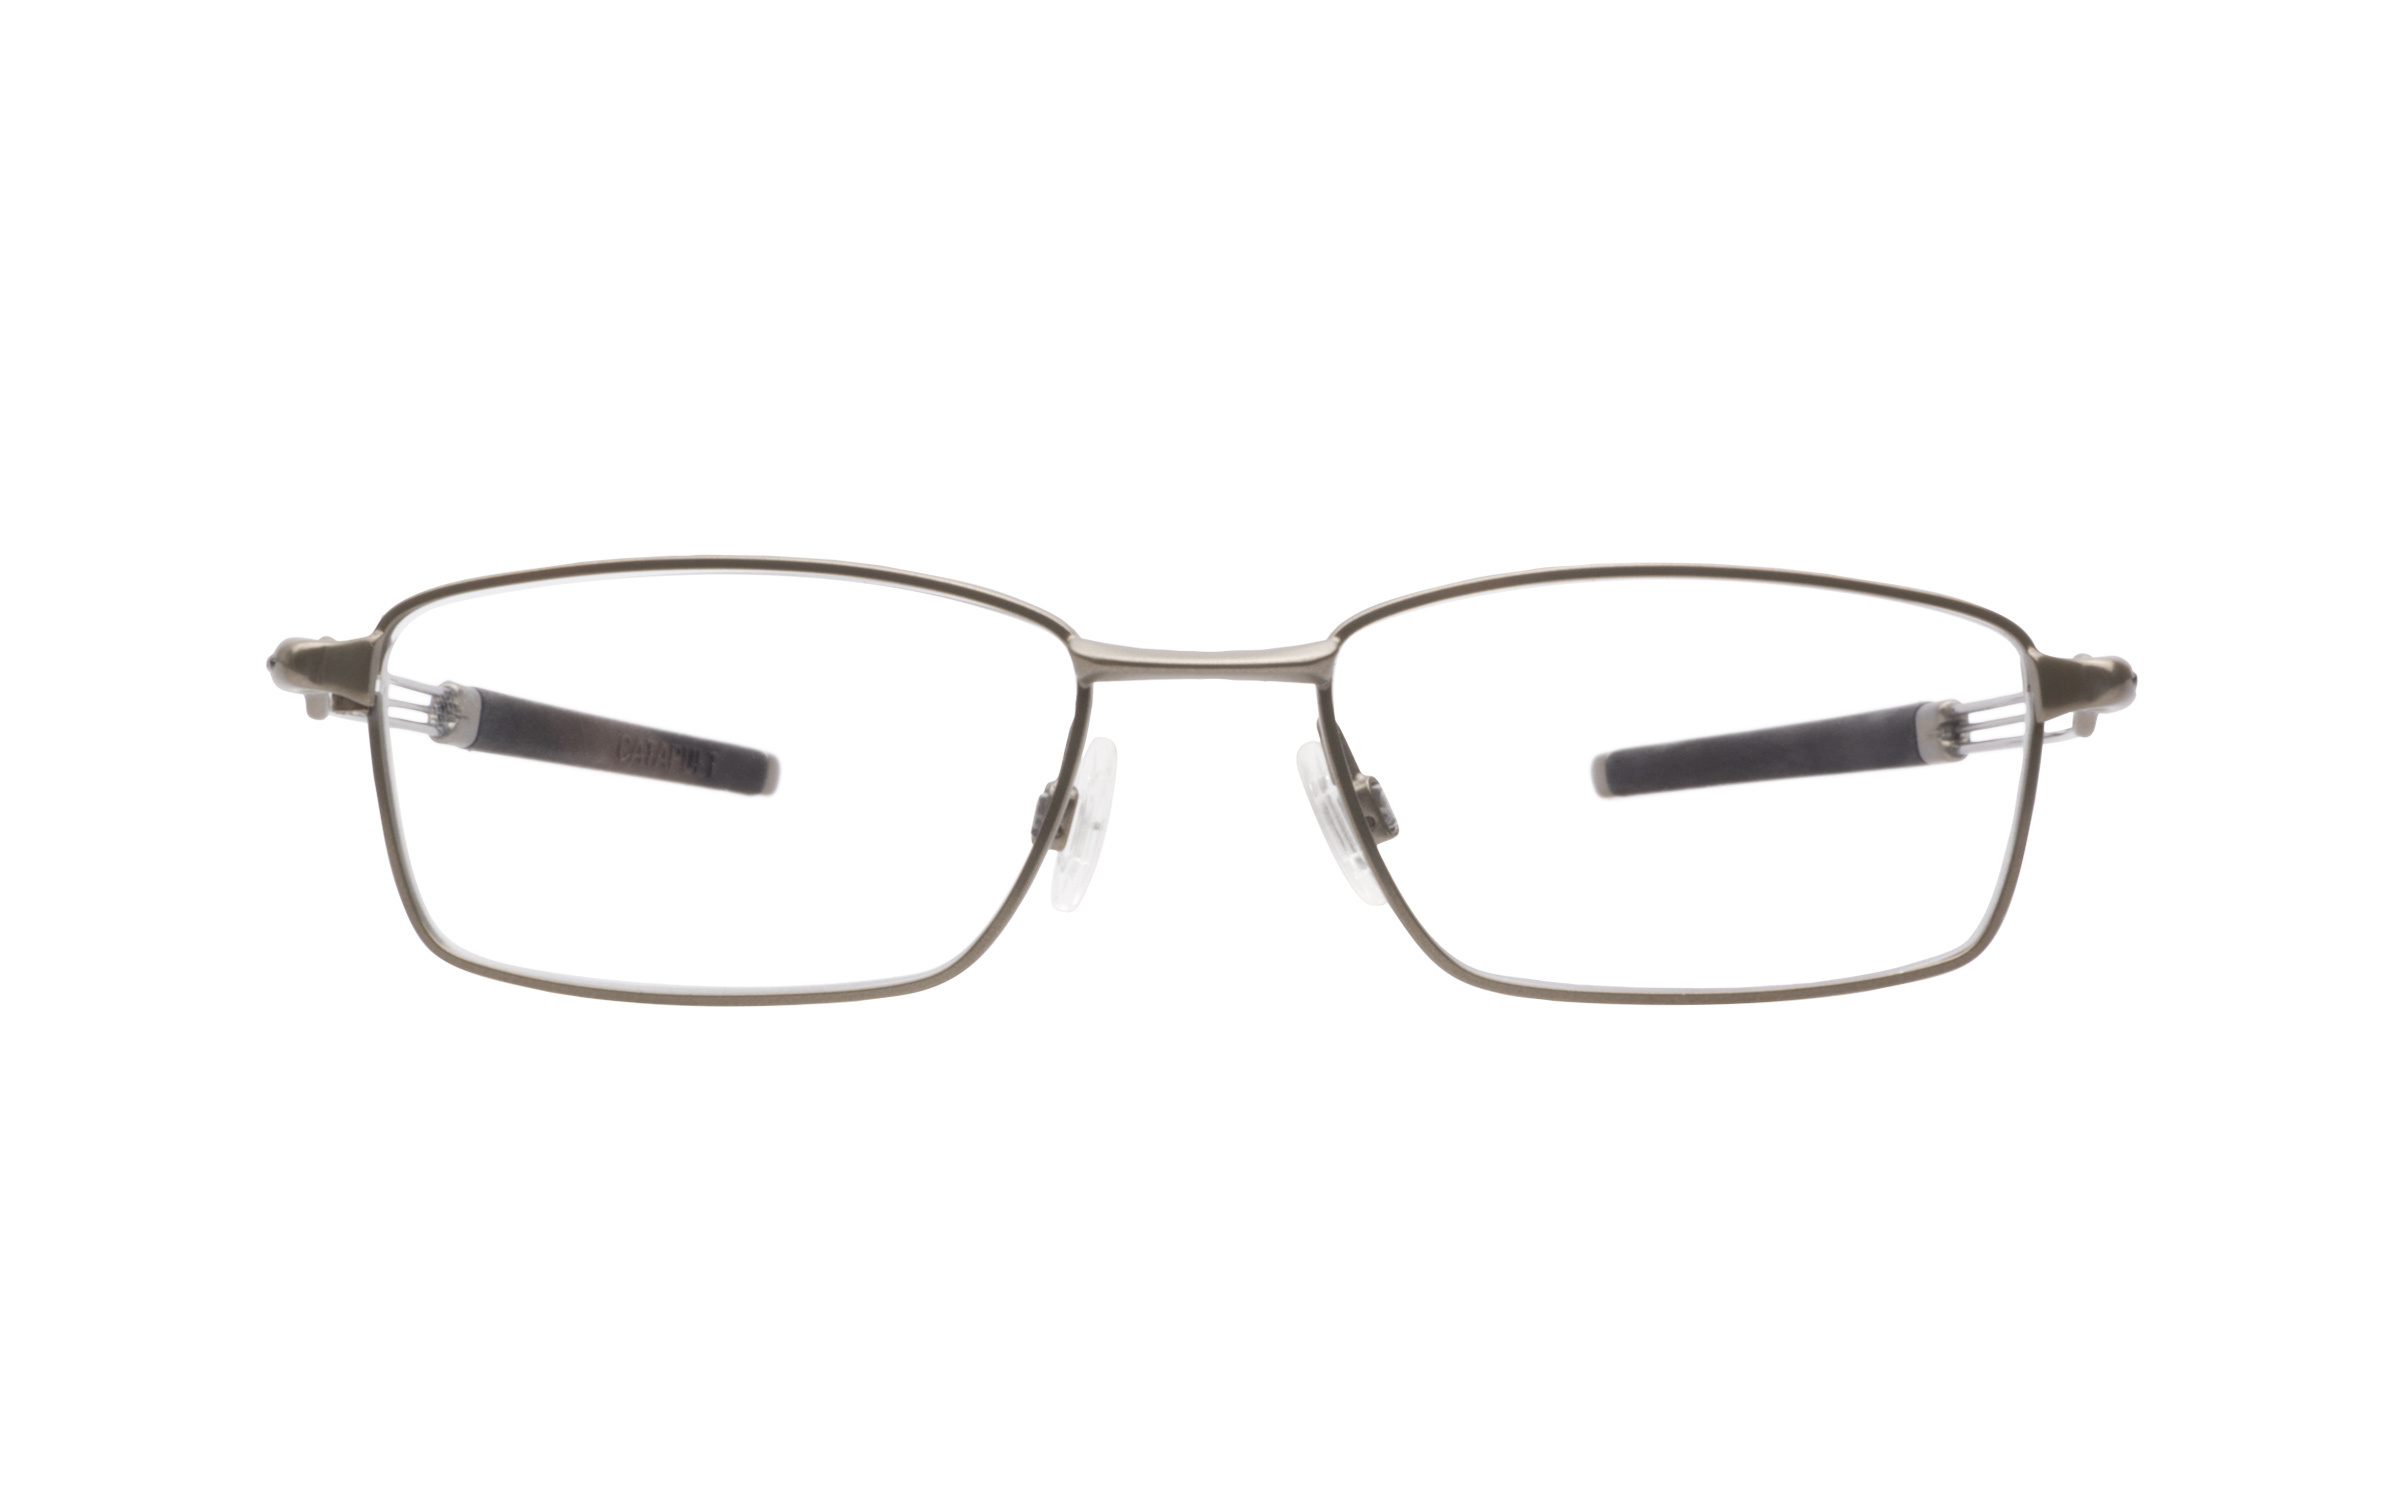 Image of Oakley Catapult OX5092 352 Light